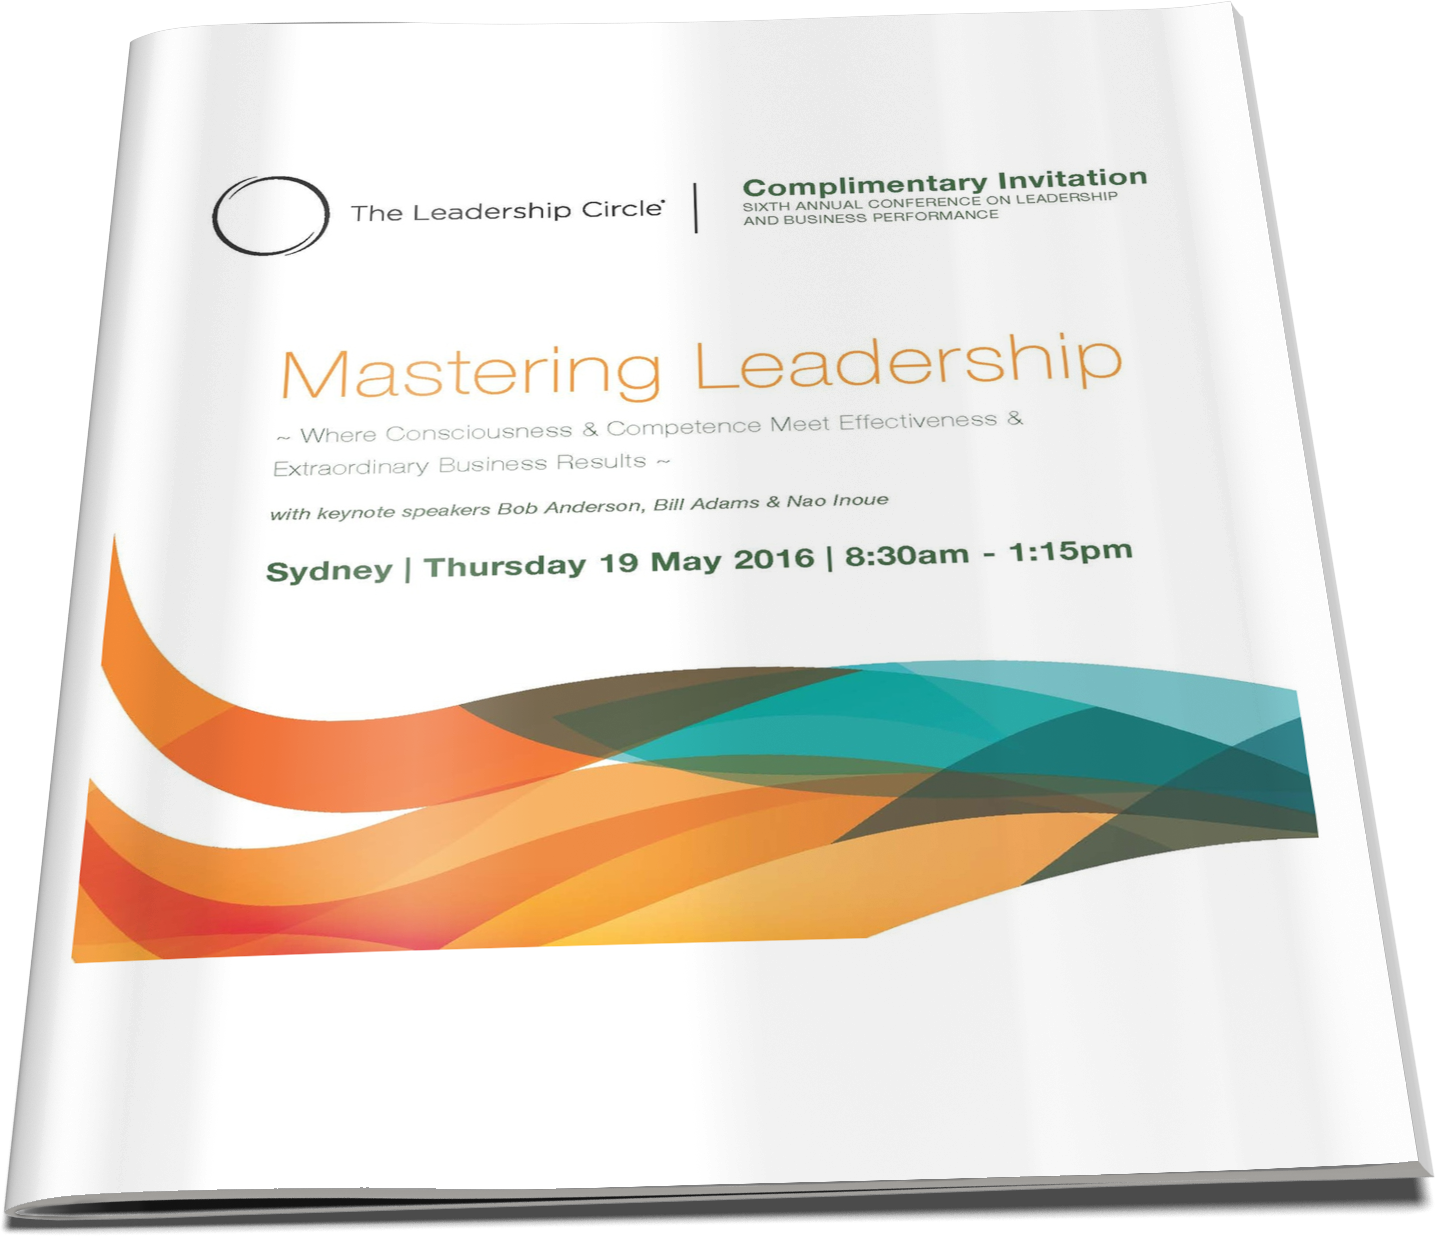 19 May, 2016 - Mastering Leadership: Where Consciousness & Competence Meet Effectiveness & Extraordinary Business Results